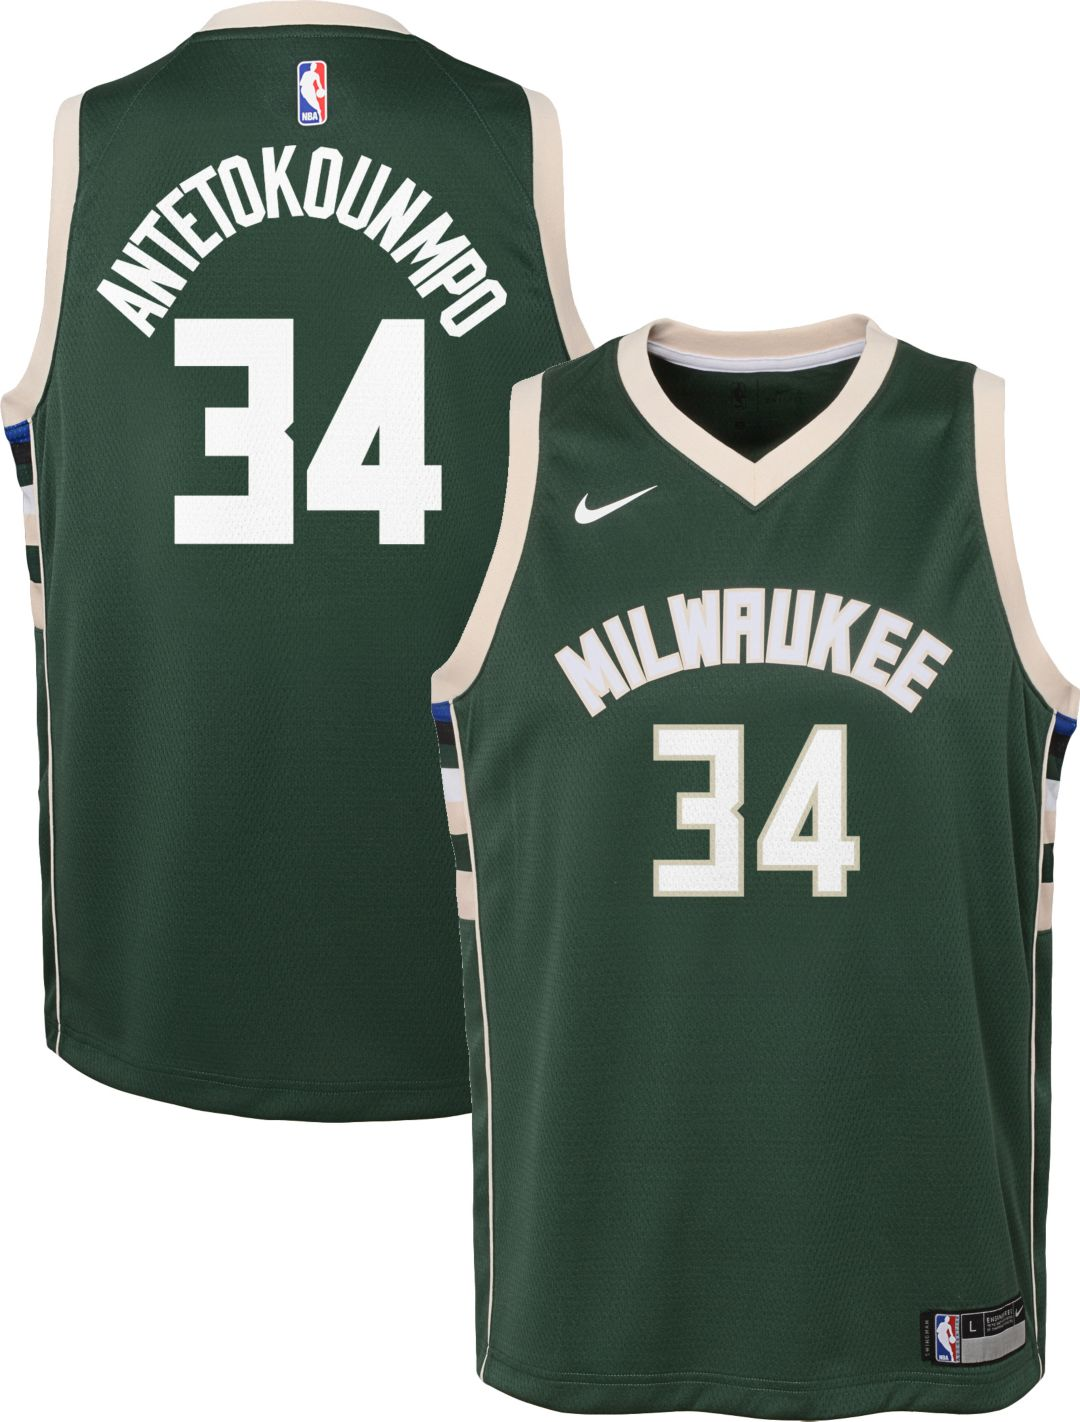 04240f3a1a5 Nike Youth Milwaukee Bucks Giannis Antetokounmpo #34 Green Dri-FIT Swingman  Jersey 1